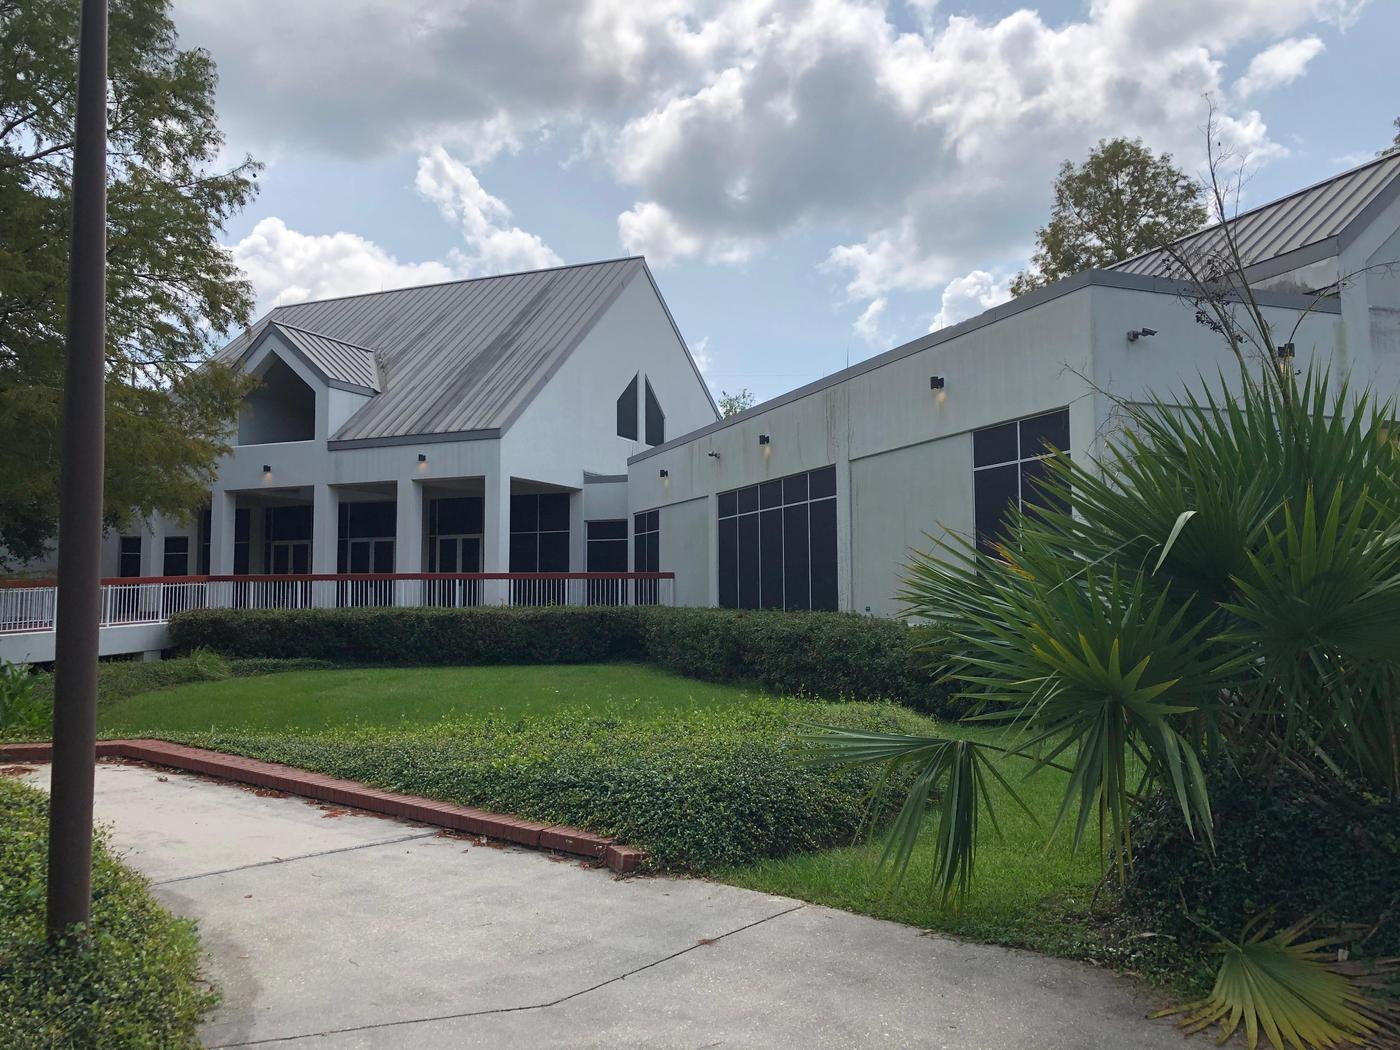 ACC BuildingWelcome to the Acadian Cultural Center